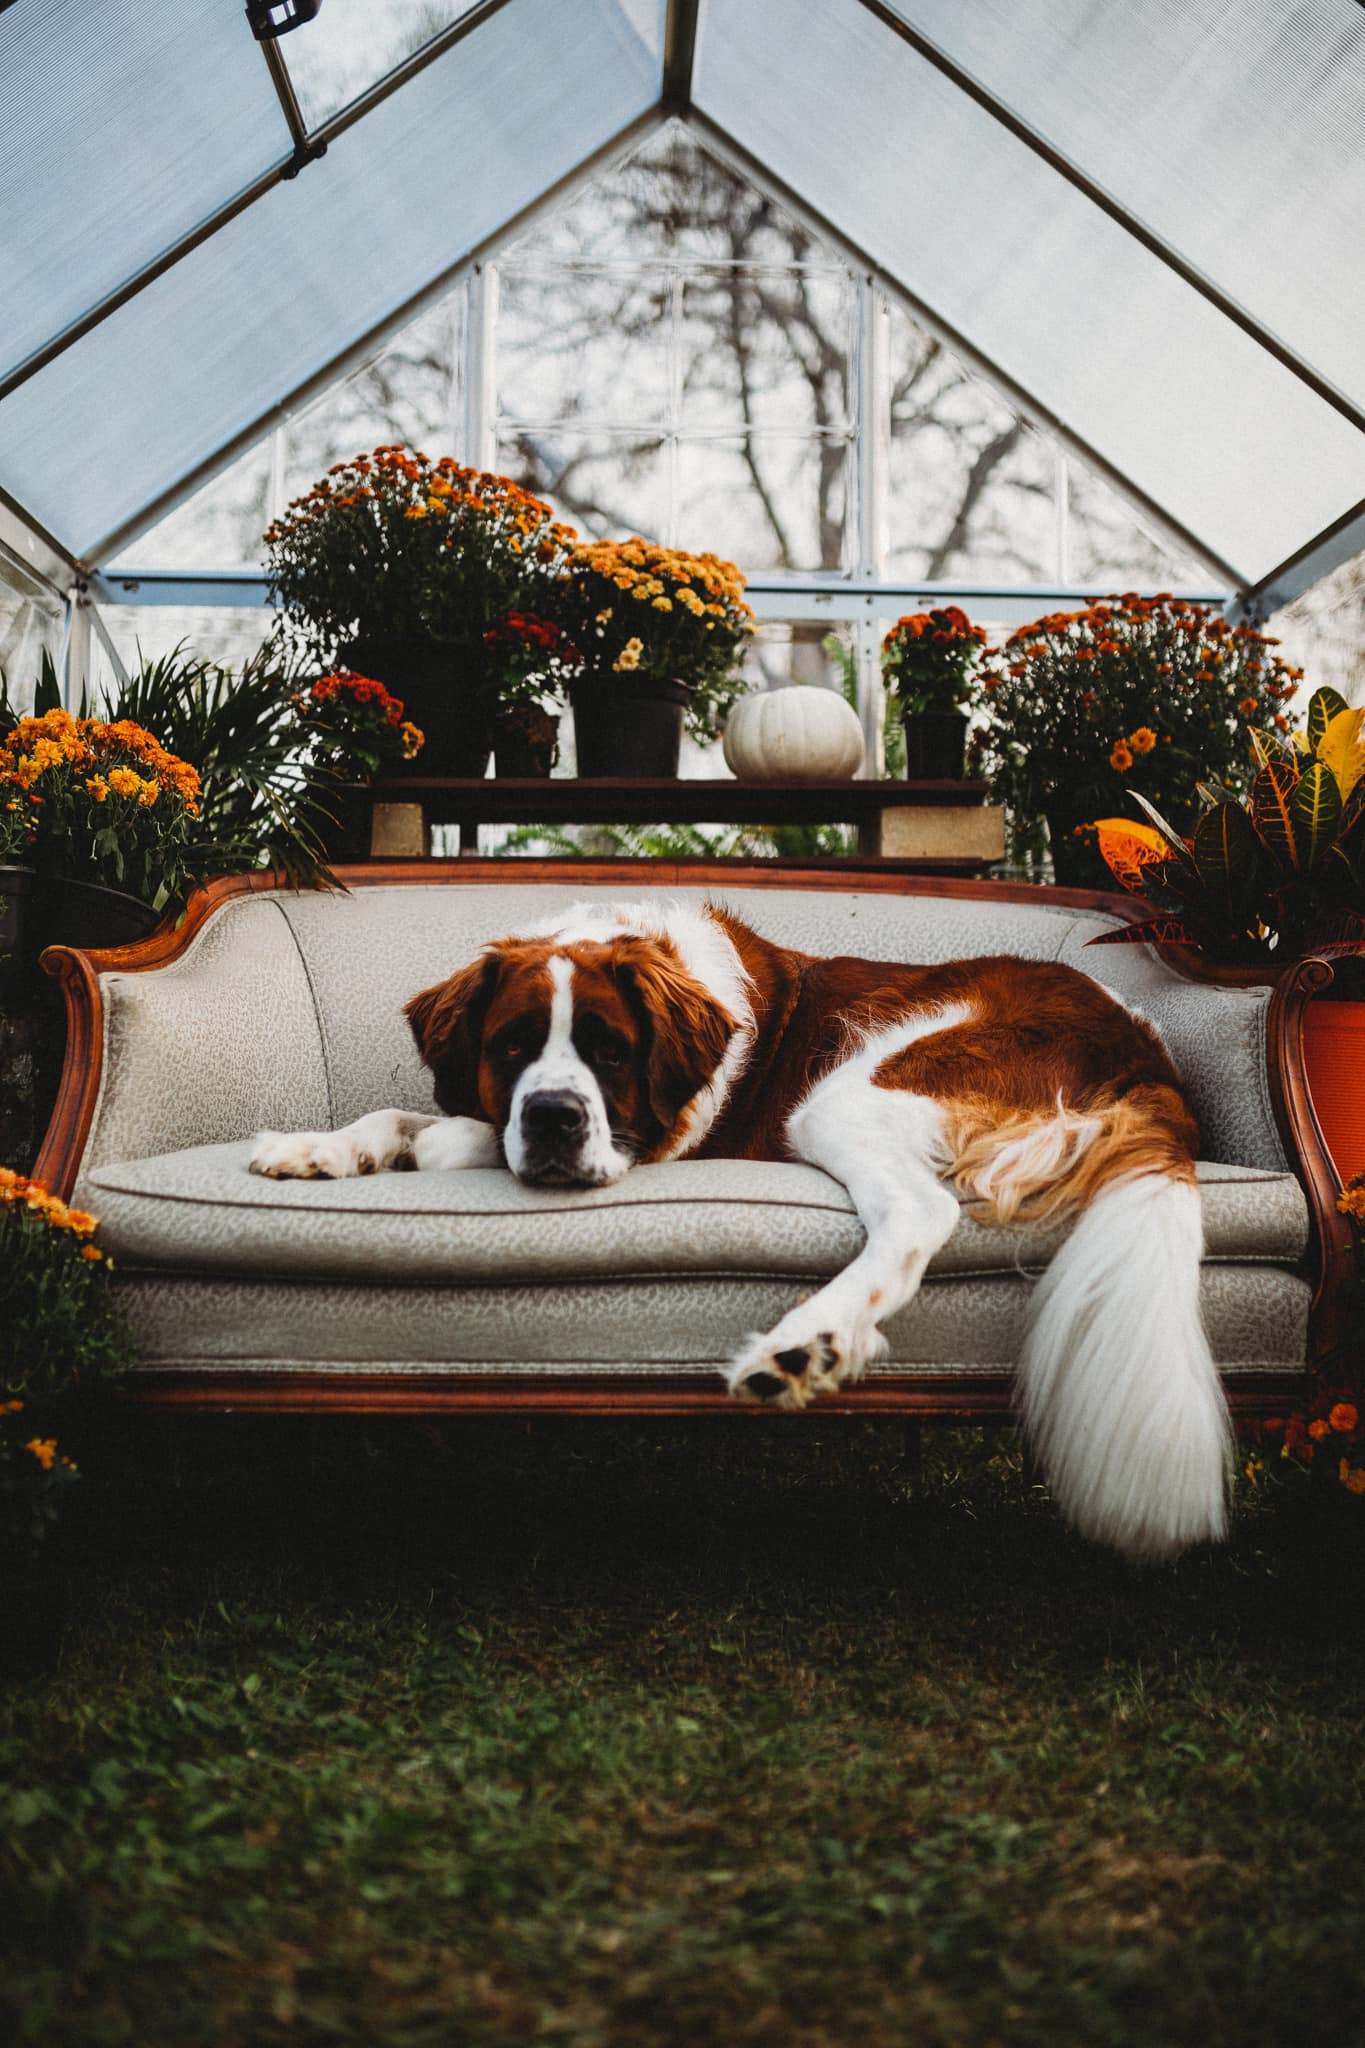 a dog chills on a couch in a greenhouse